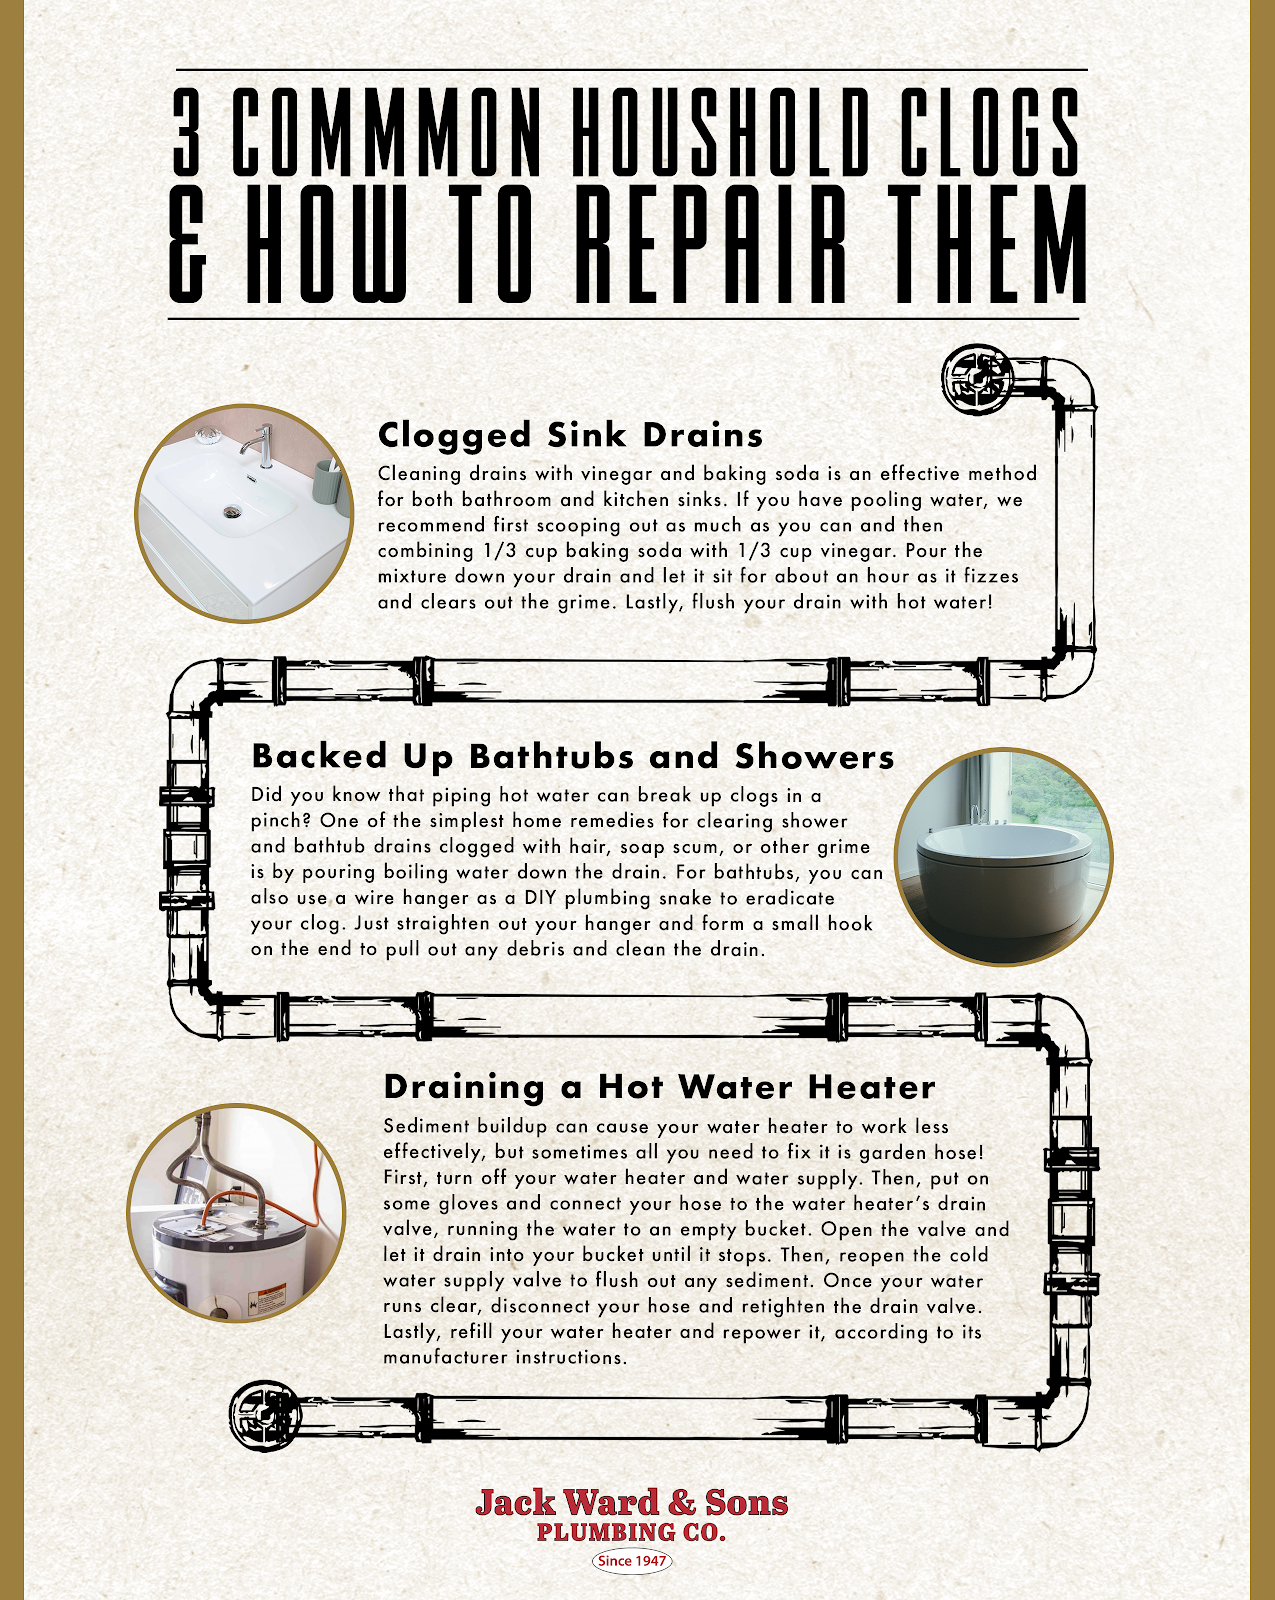 infographic explaining common household clogs and how to repair them